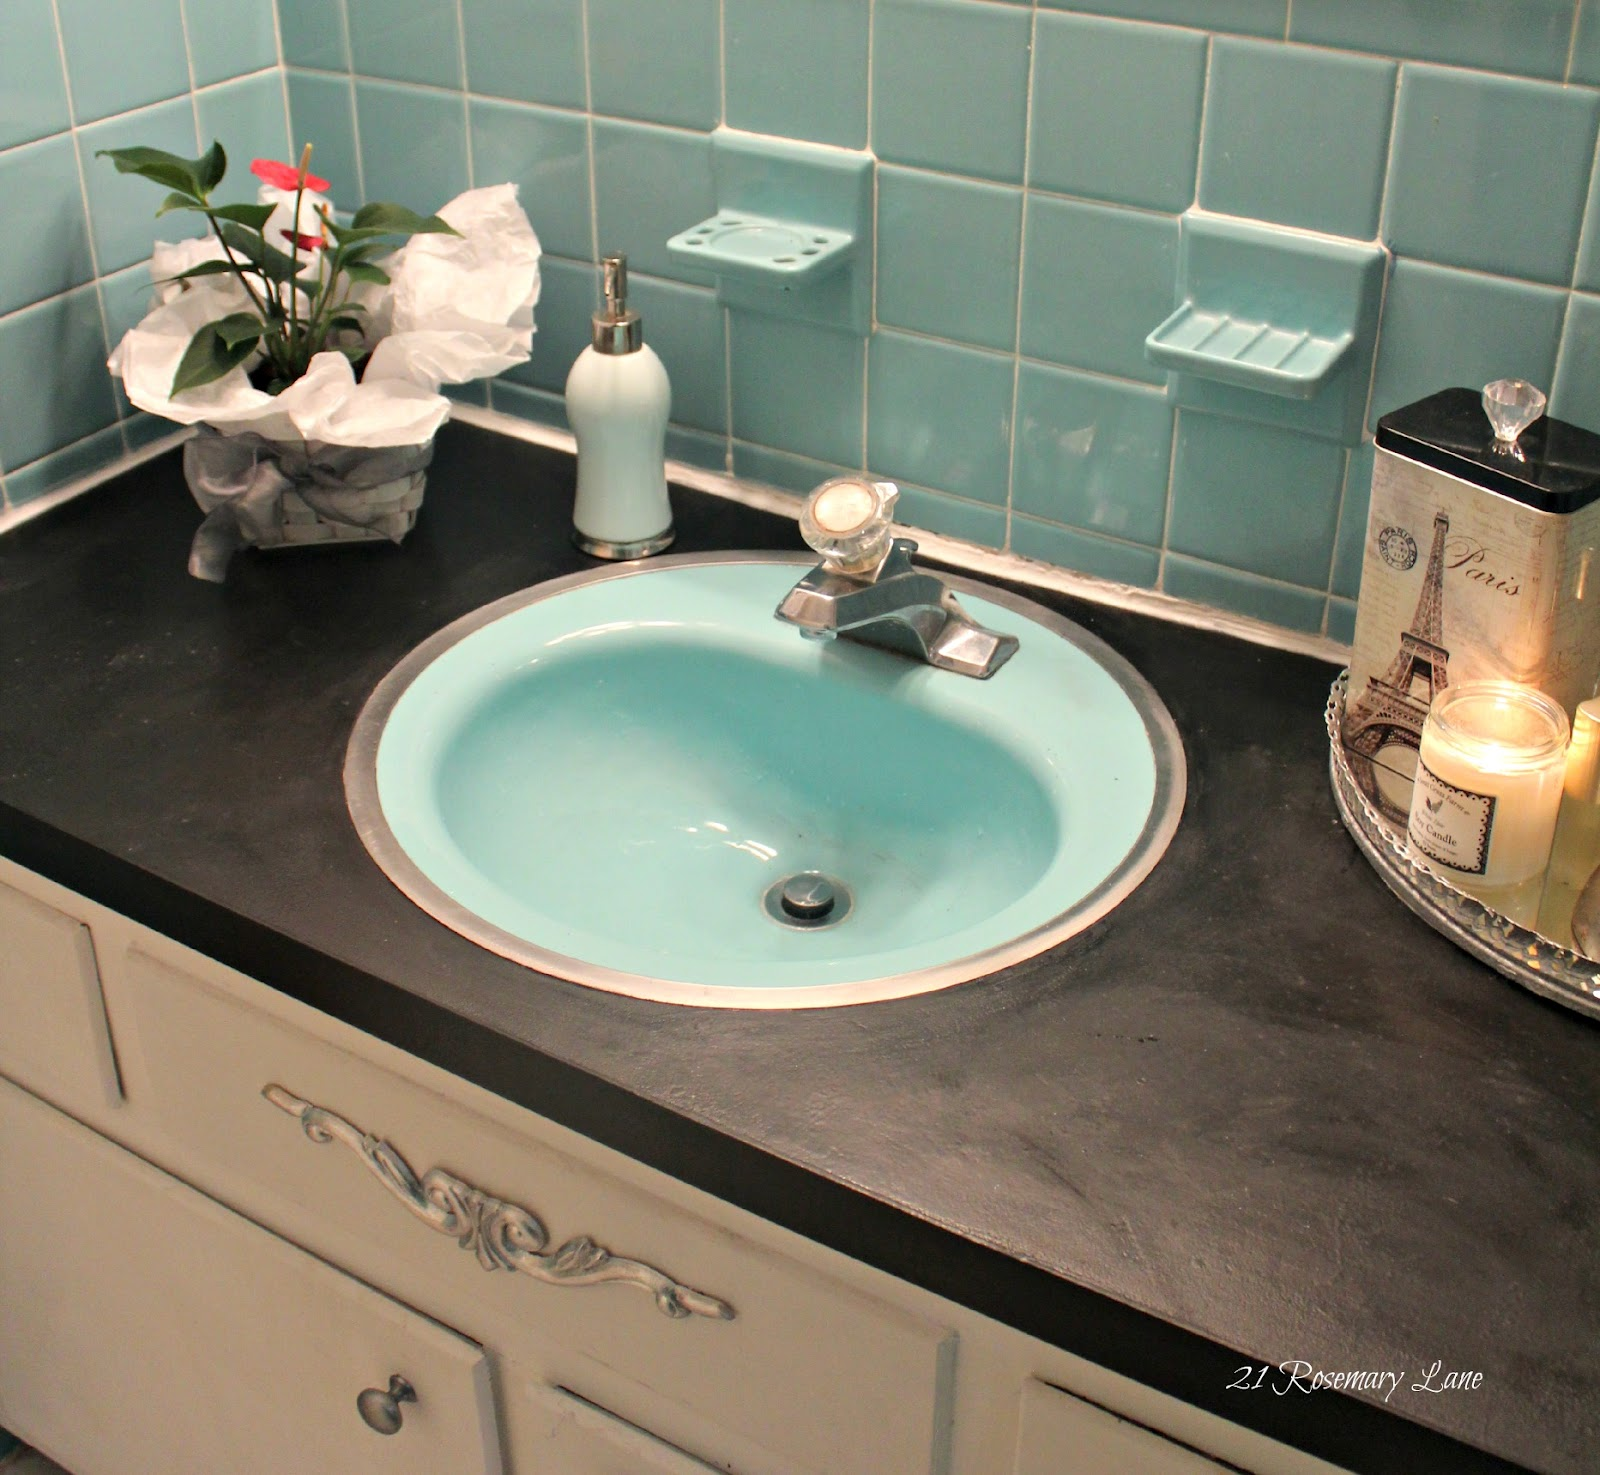 Best Countertops For Bathroom: 21 Rosemary Lane: Painted Bathroom Counter Top